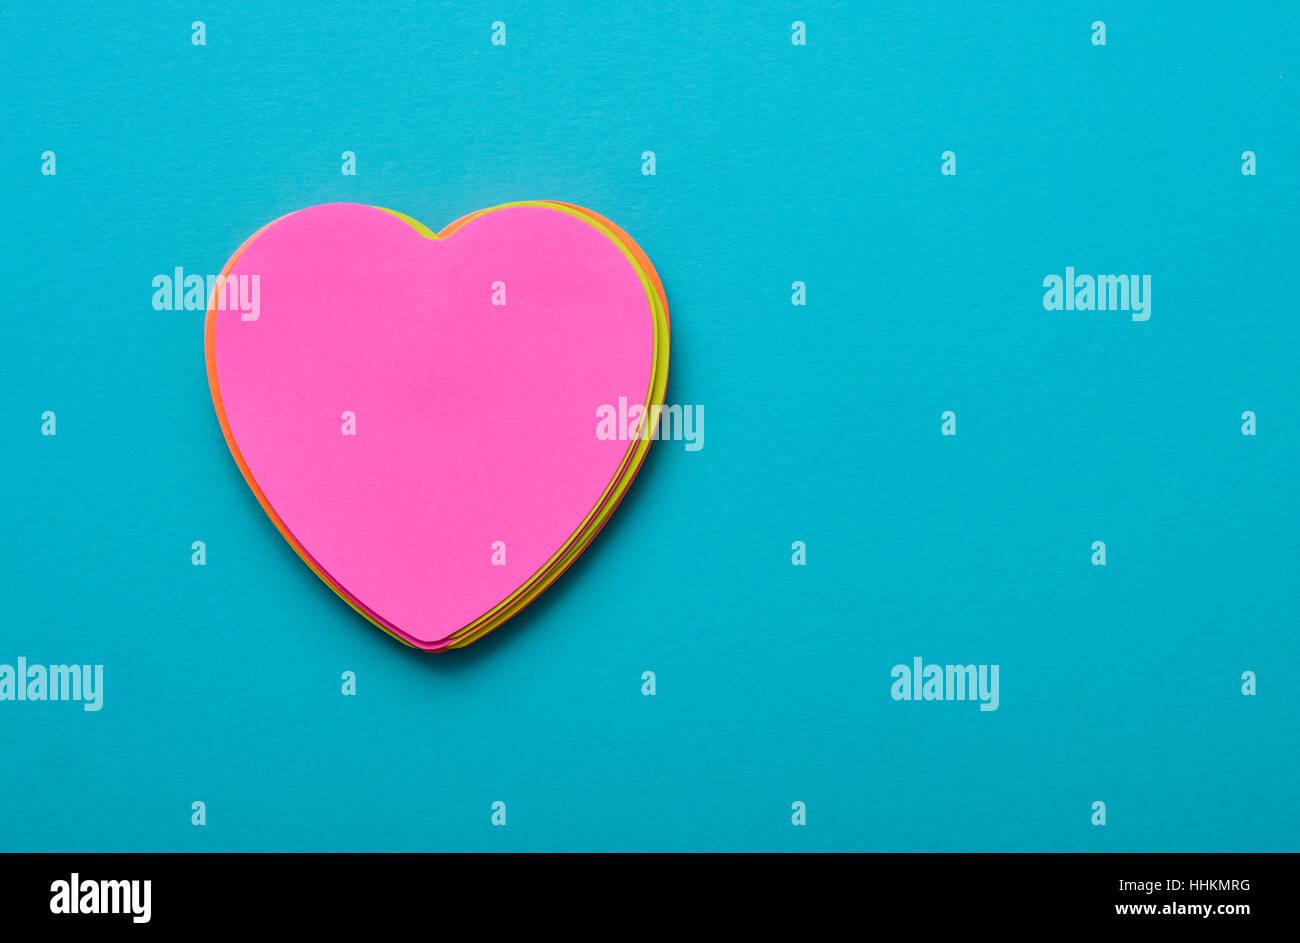 a stack of heart-shaped sticky notes of different colors topped by a pink one with a blank space in it on a blue Stock Photo